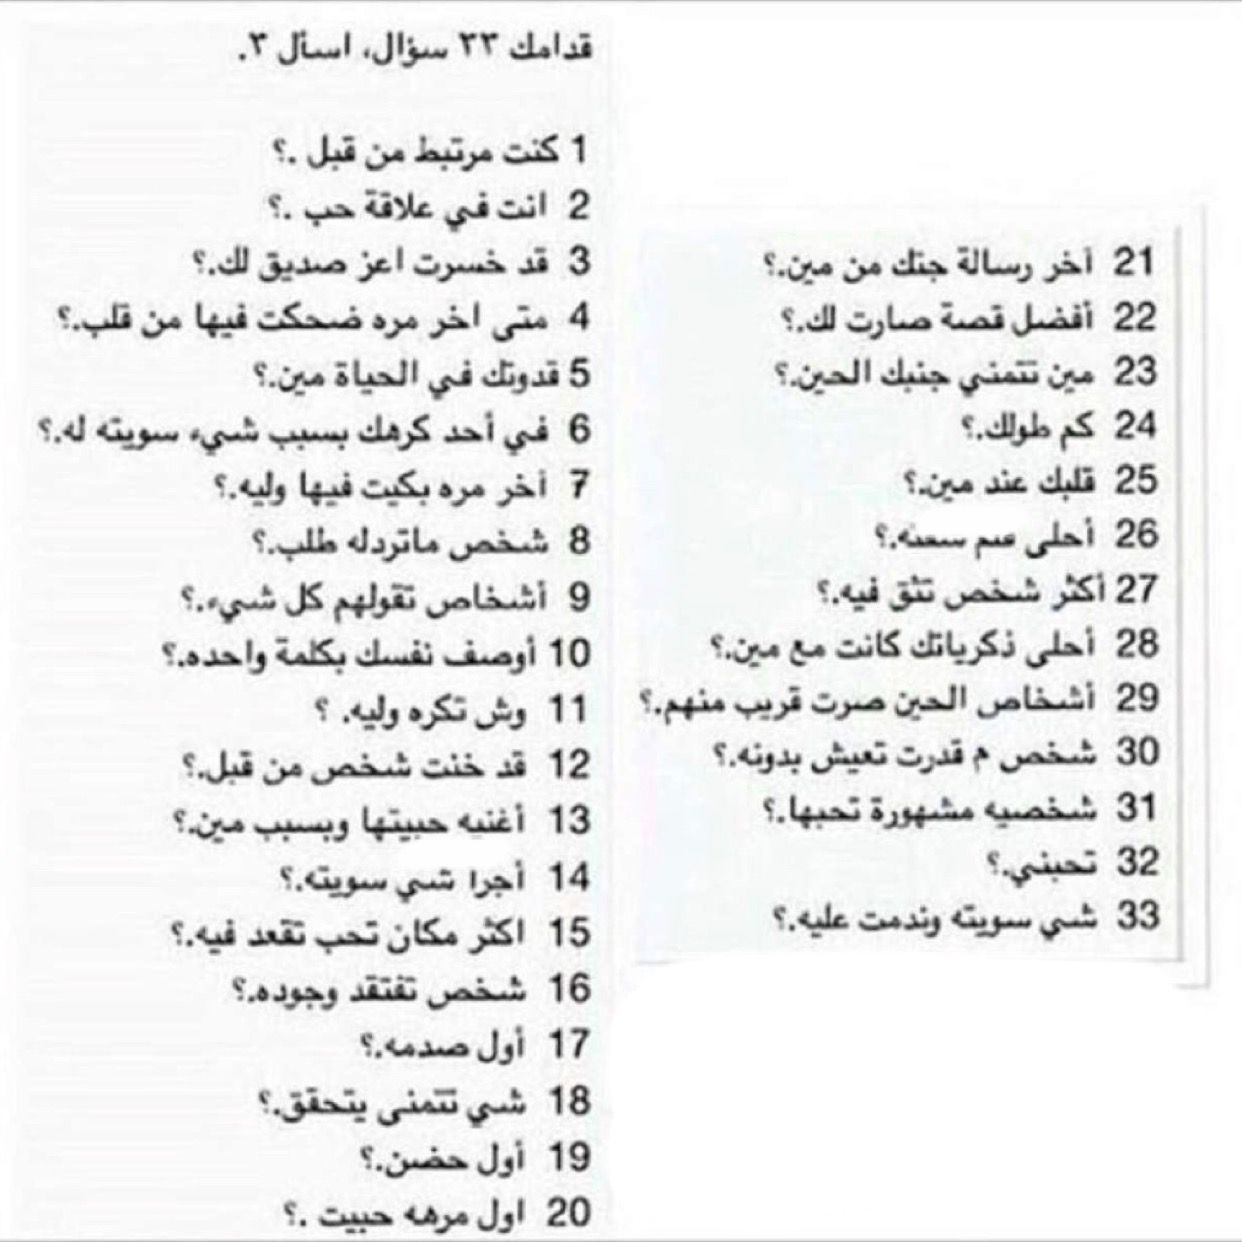 Pin By Ana Mony On اسئلة Bff Quotes Funny Dating Quotes Instagram Quotes Captions